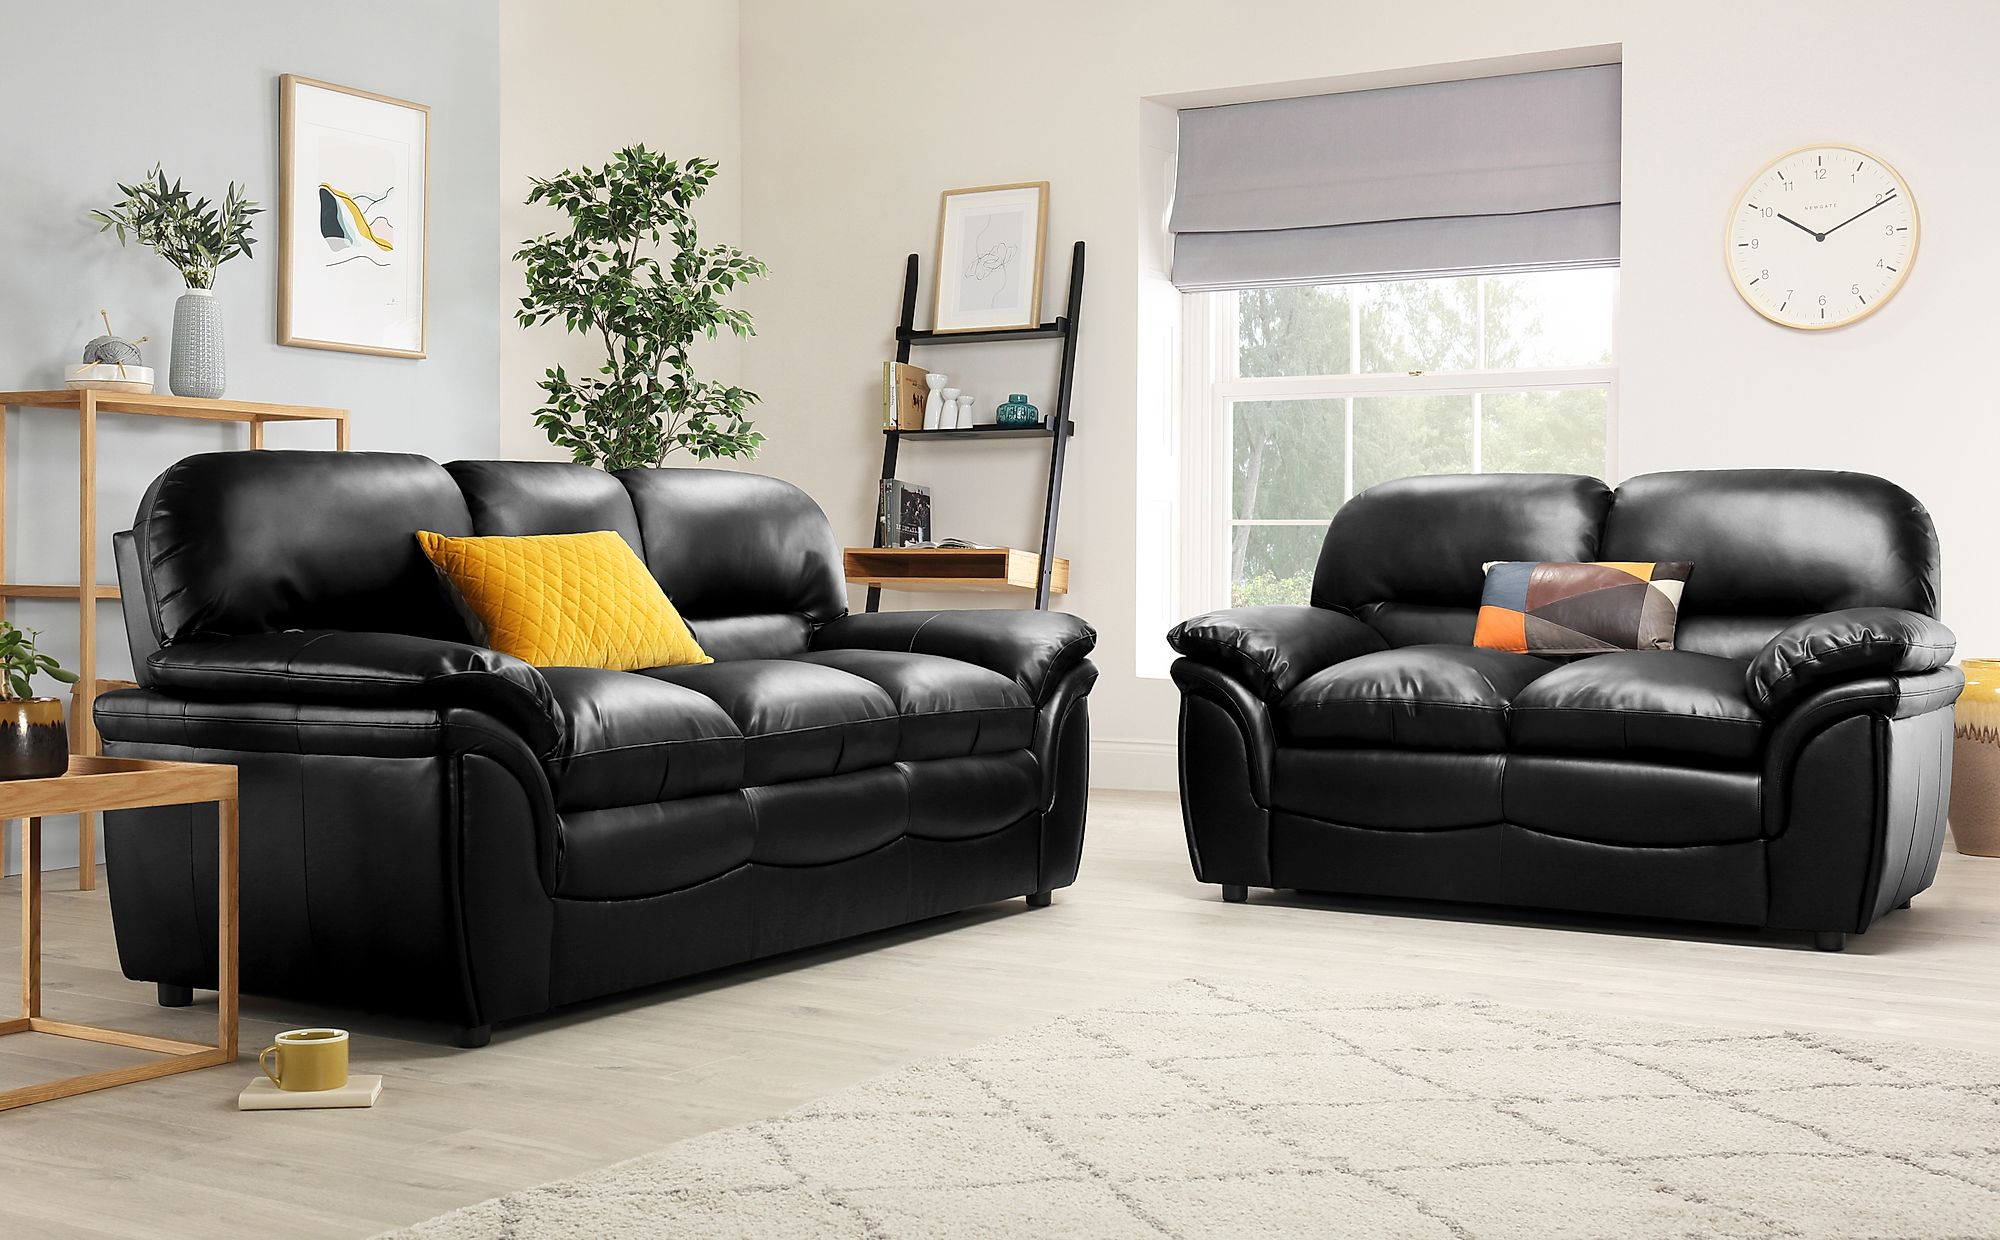 Strange Rochester Black Leather 3 2 Seater Sofa Set Pdpeps Interior Chair Design Pdpepsorg